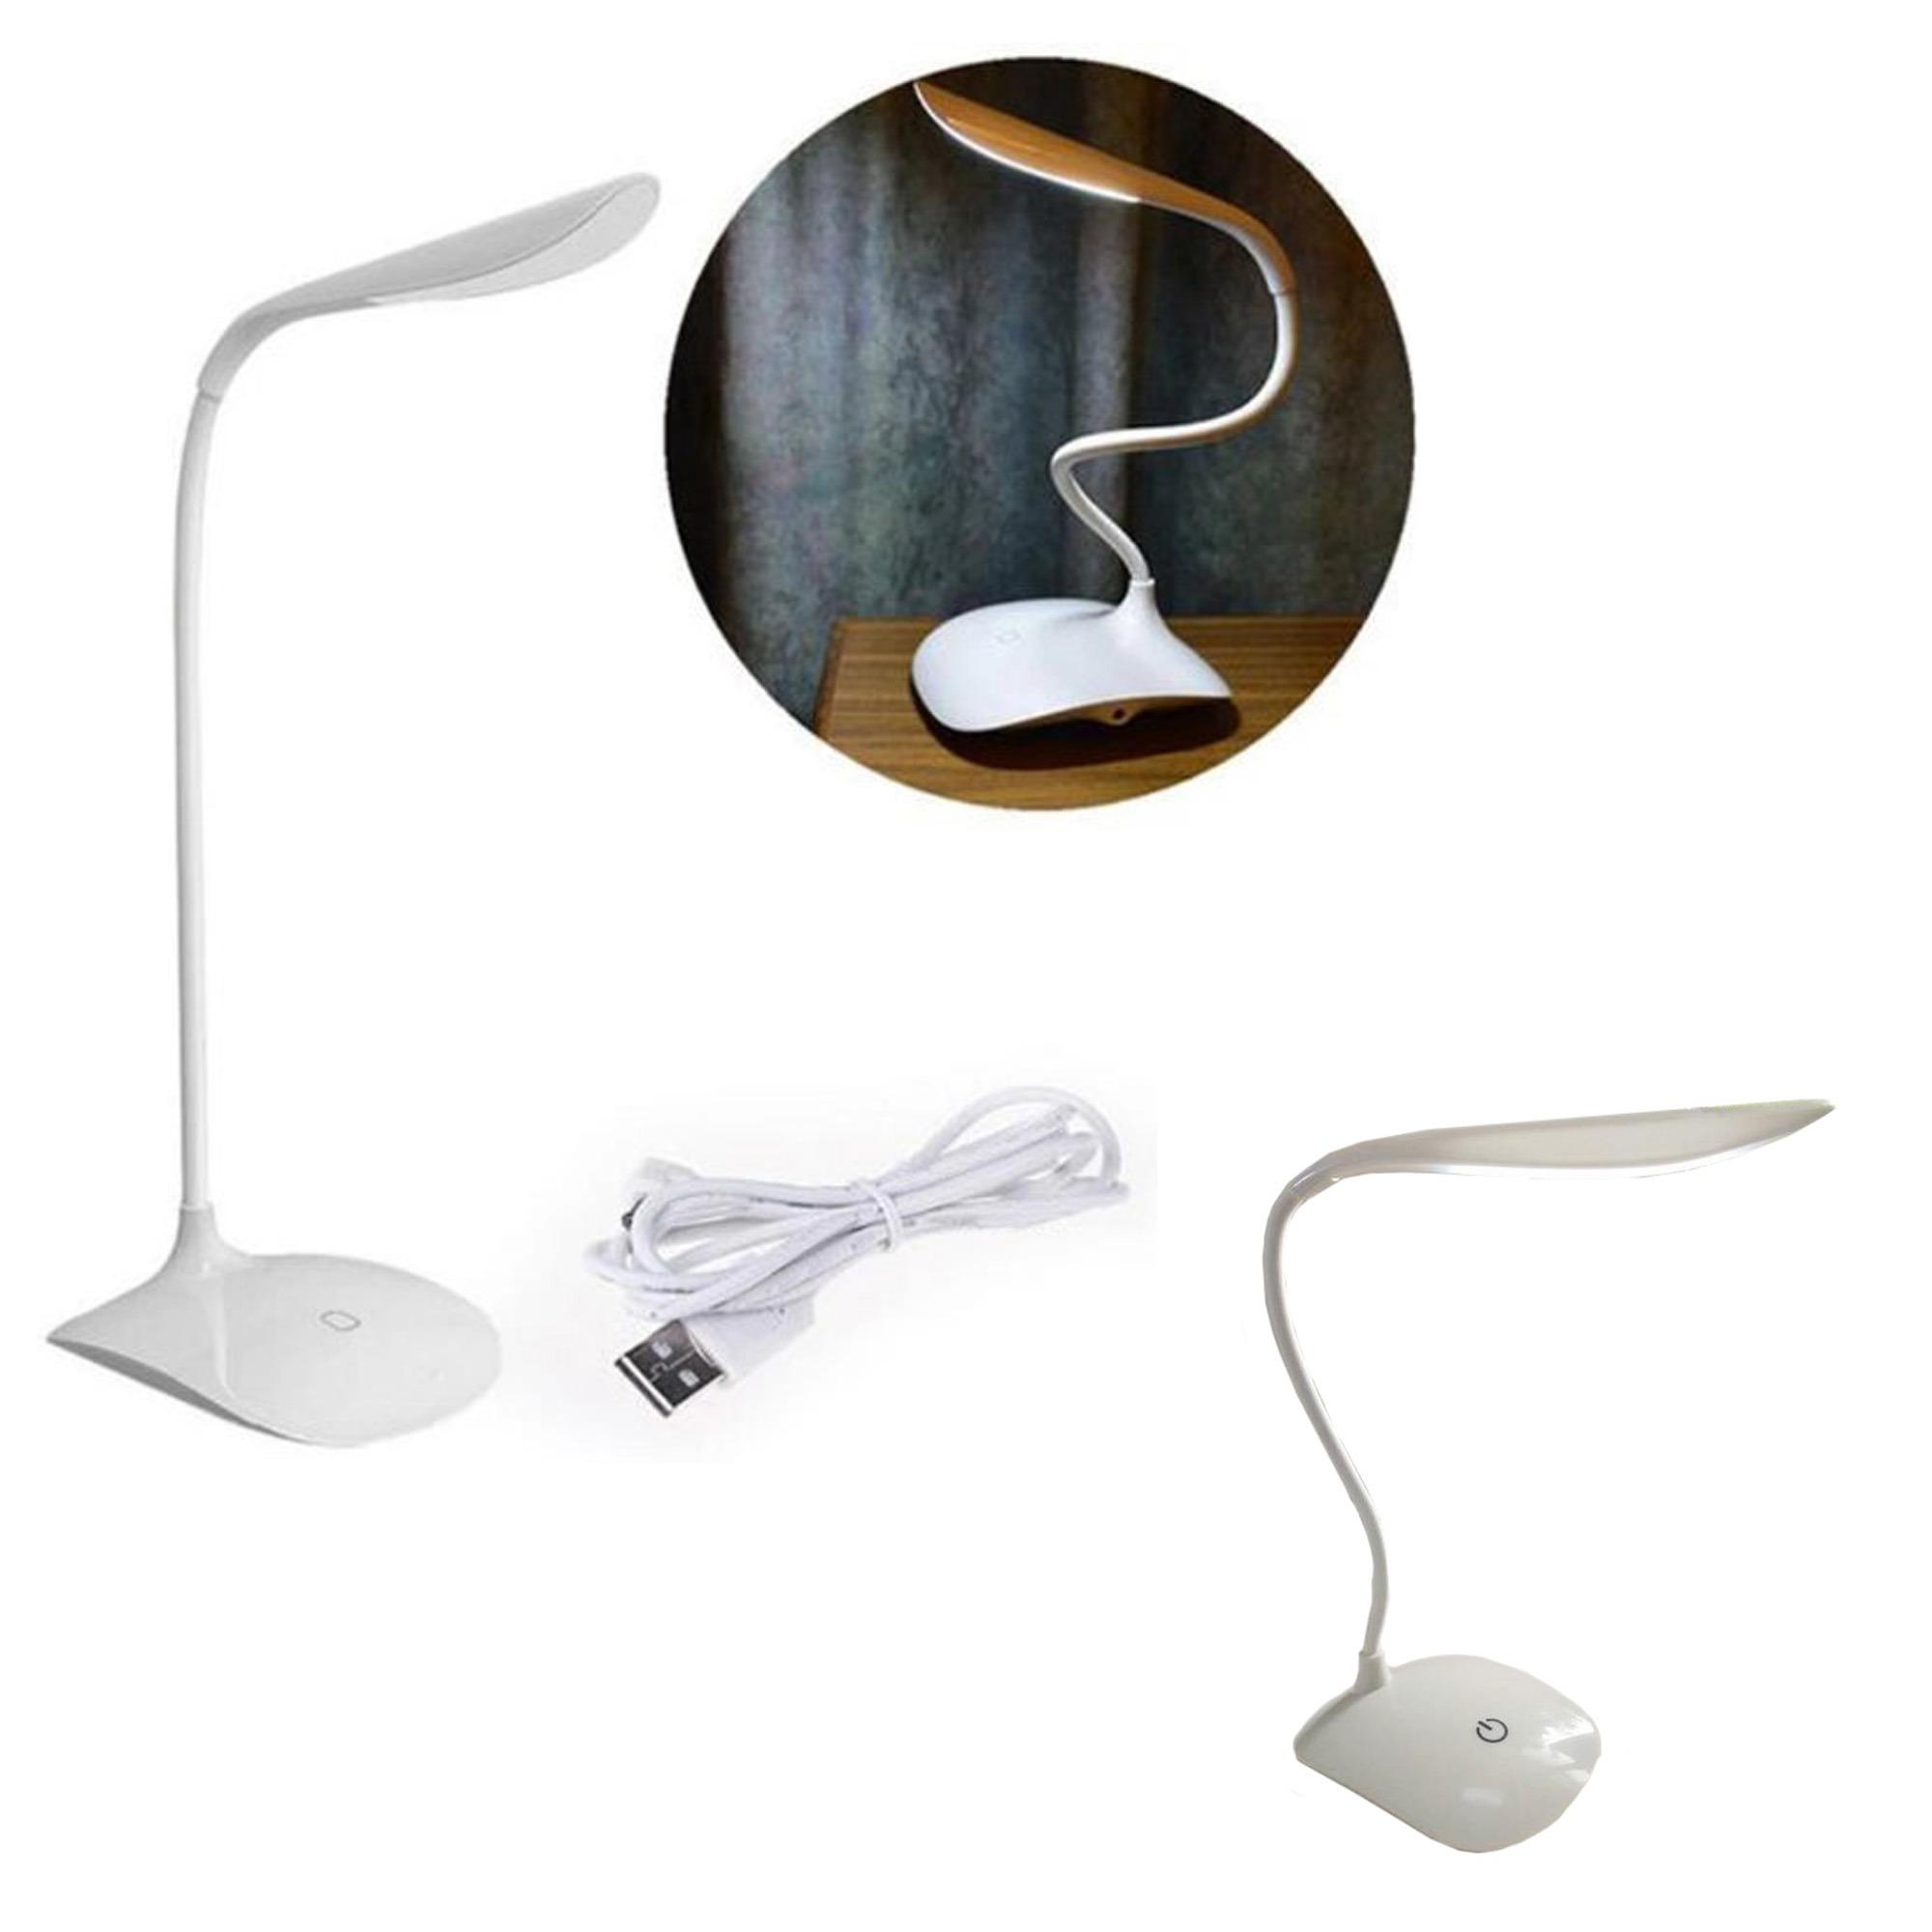 Table lamp for sale table lamps prices brands review in buy 1 take 1 high quality adjustable led table lamp light usb rechargeable desk light touch aloadofball Choice Image